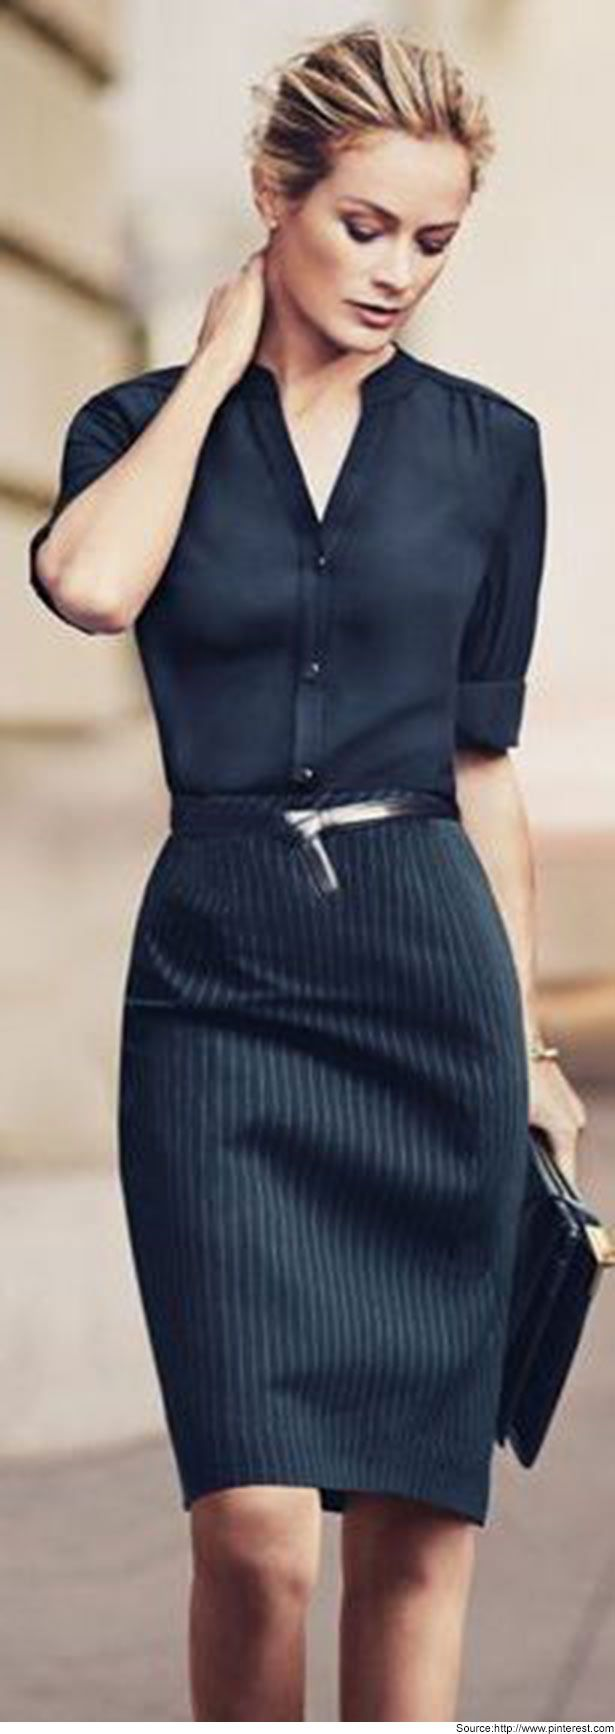 Blouses and shirts for the formal look  with pencil skirt... Read more